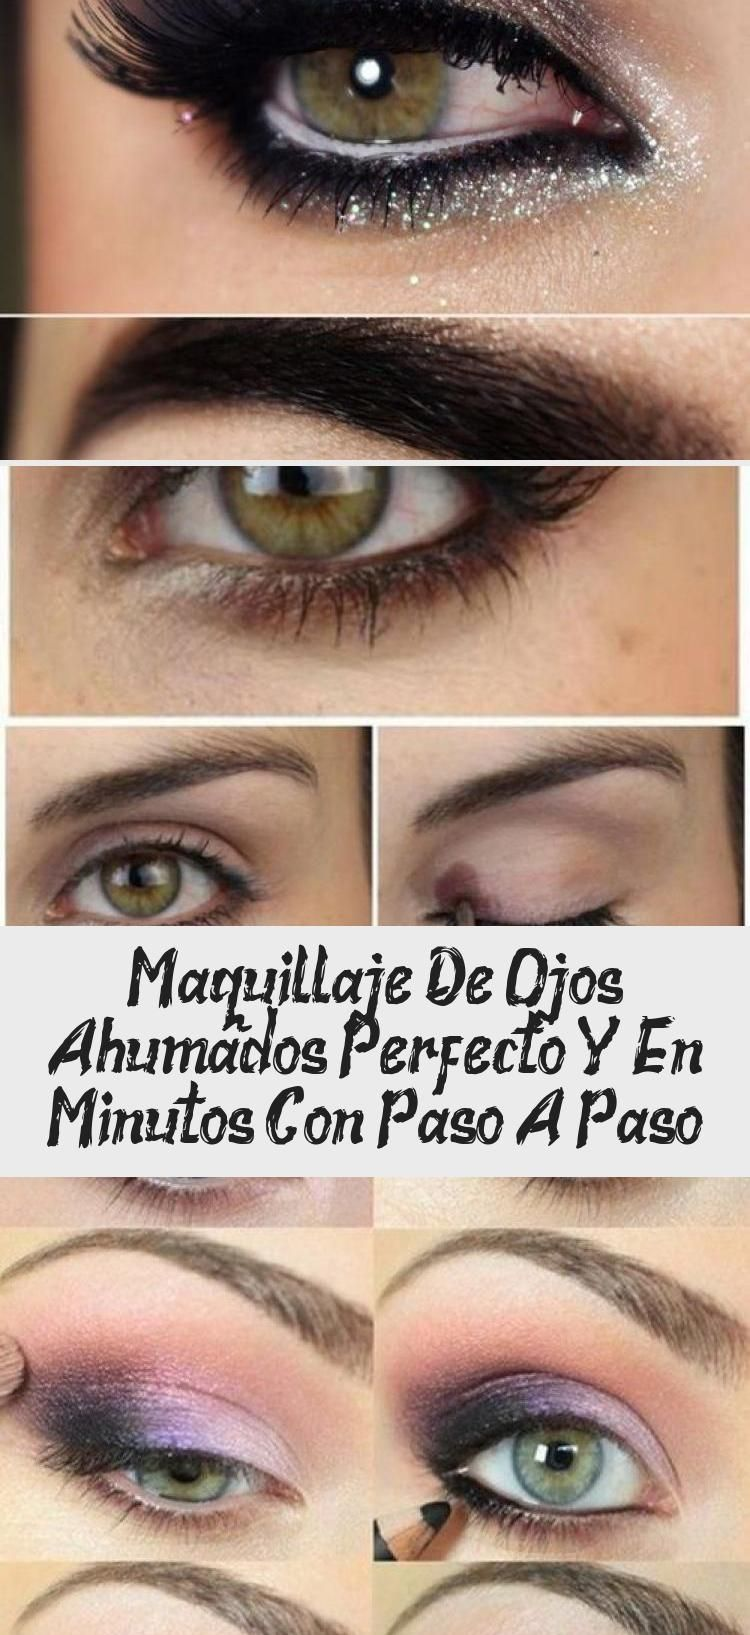 Maquillaje De Ojos Ahumados Perfecto Y En Minutos Con Paso A Paso Make Up Eye Make Up Eye Make Make Up